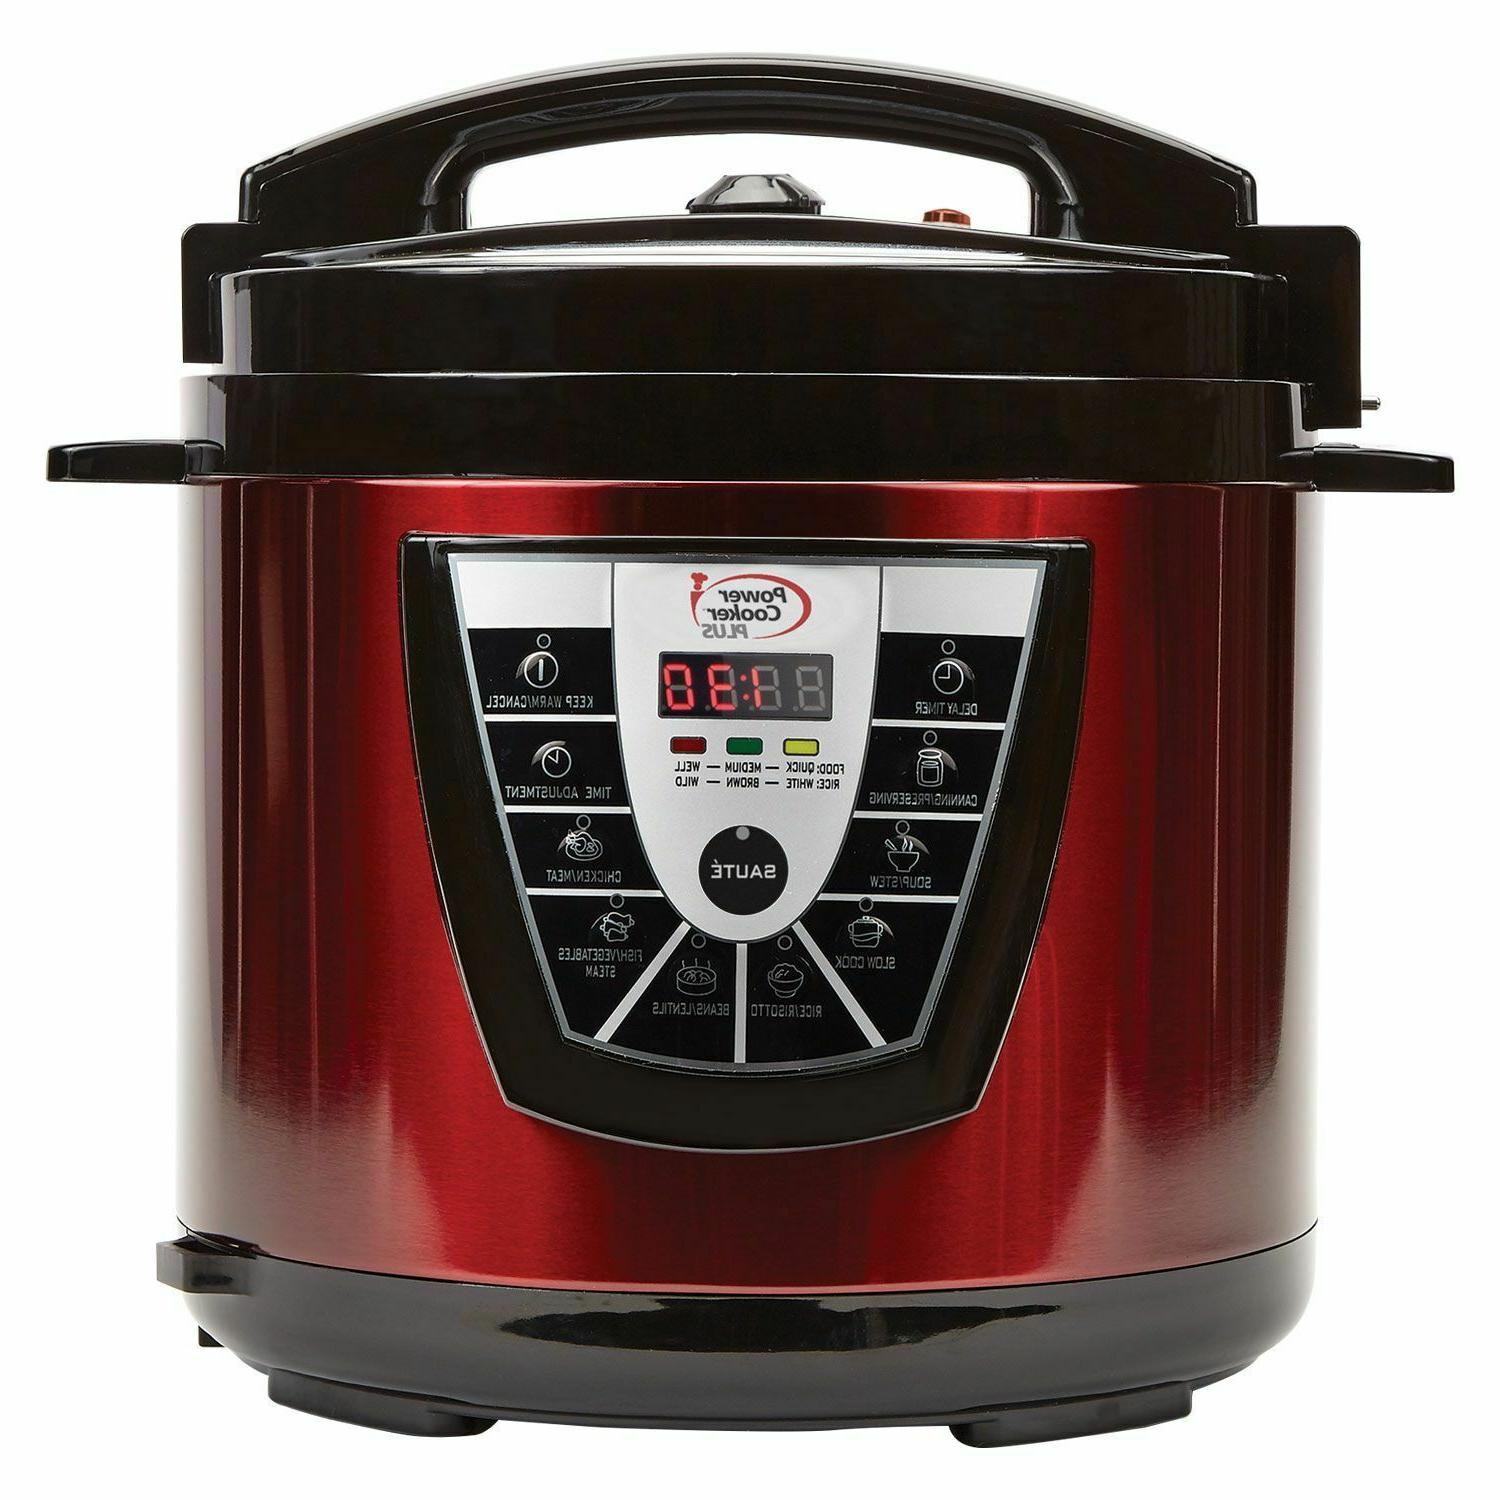 NEW 8 QUART POWER PRESSURE COOKER XL SET NON-STICK DISHWASHE